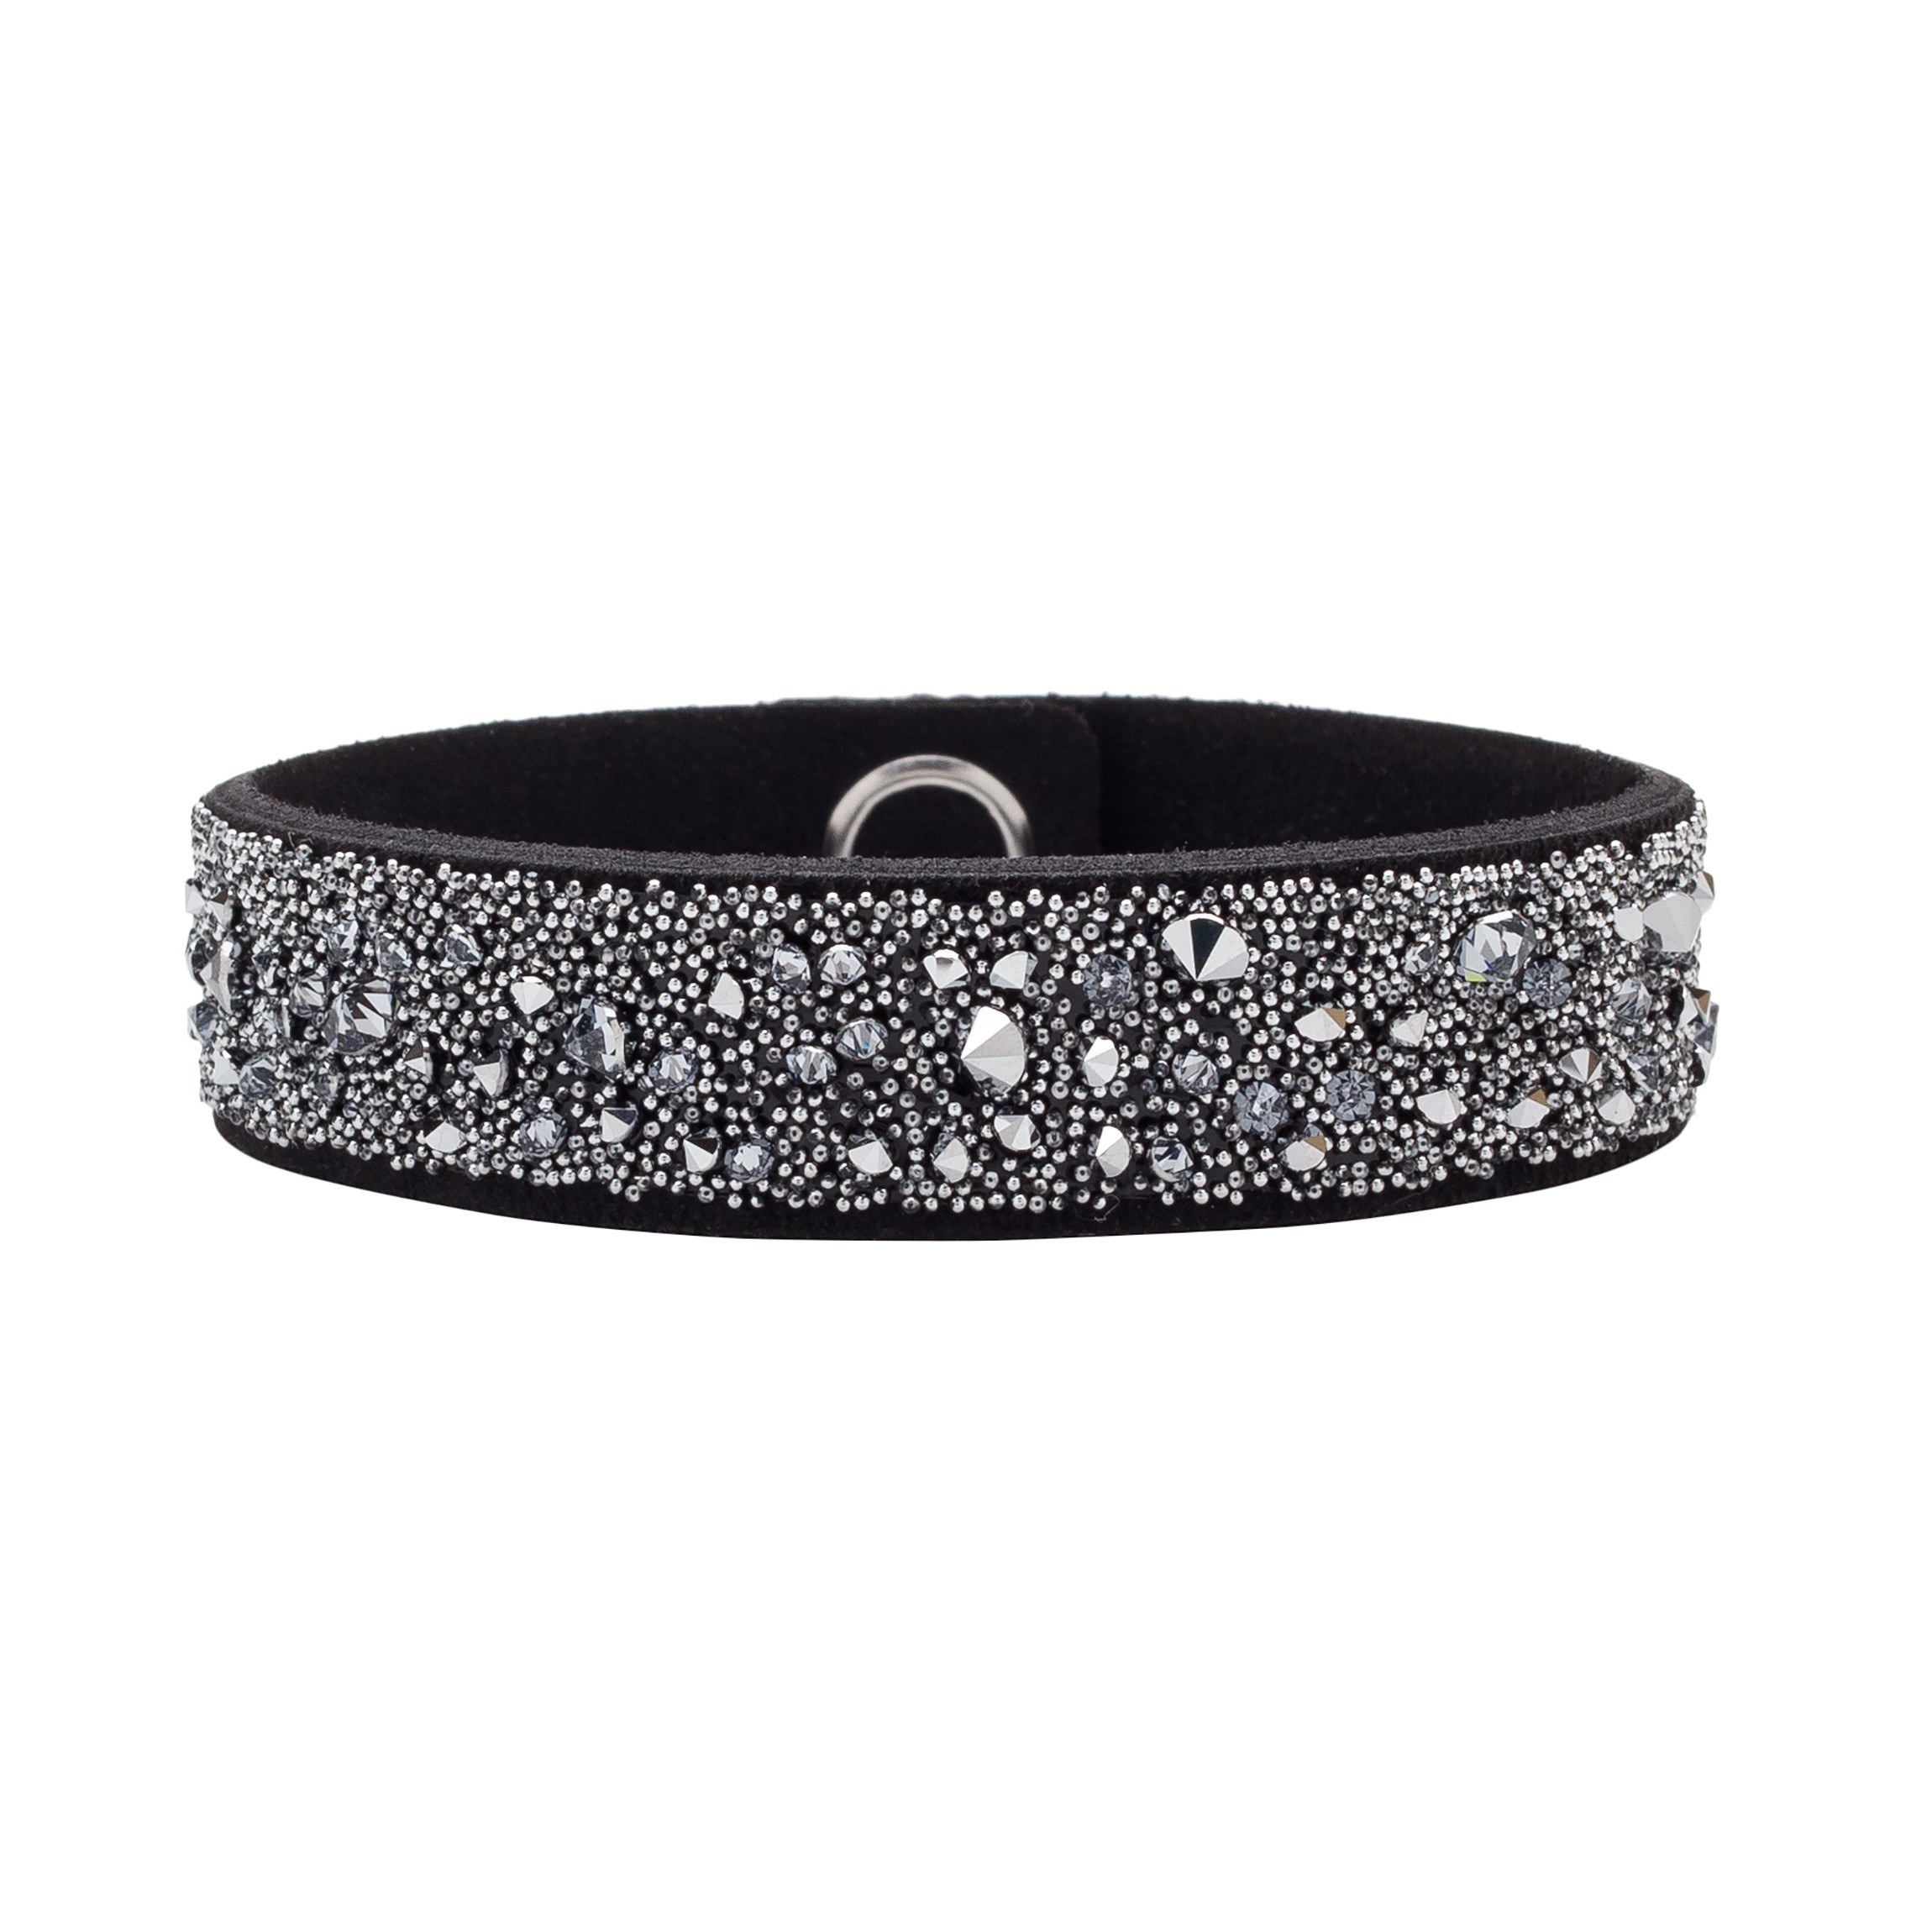 BRACELET WITH ALCANTARA AND SWAROVSKI CRY MEDLEY – MODEL 14